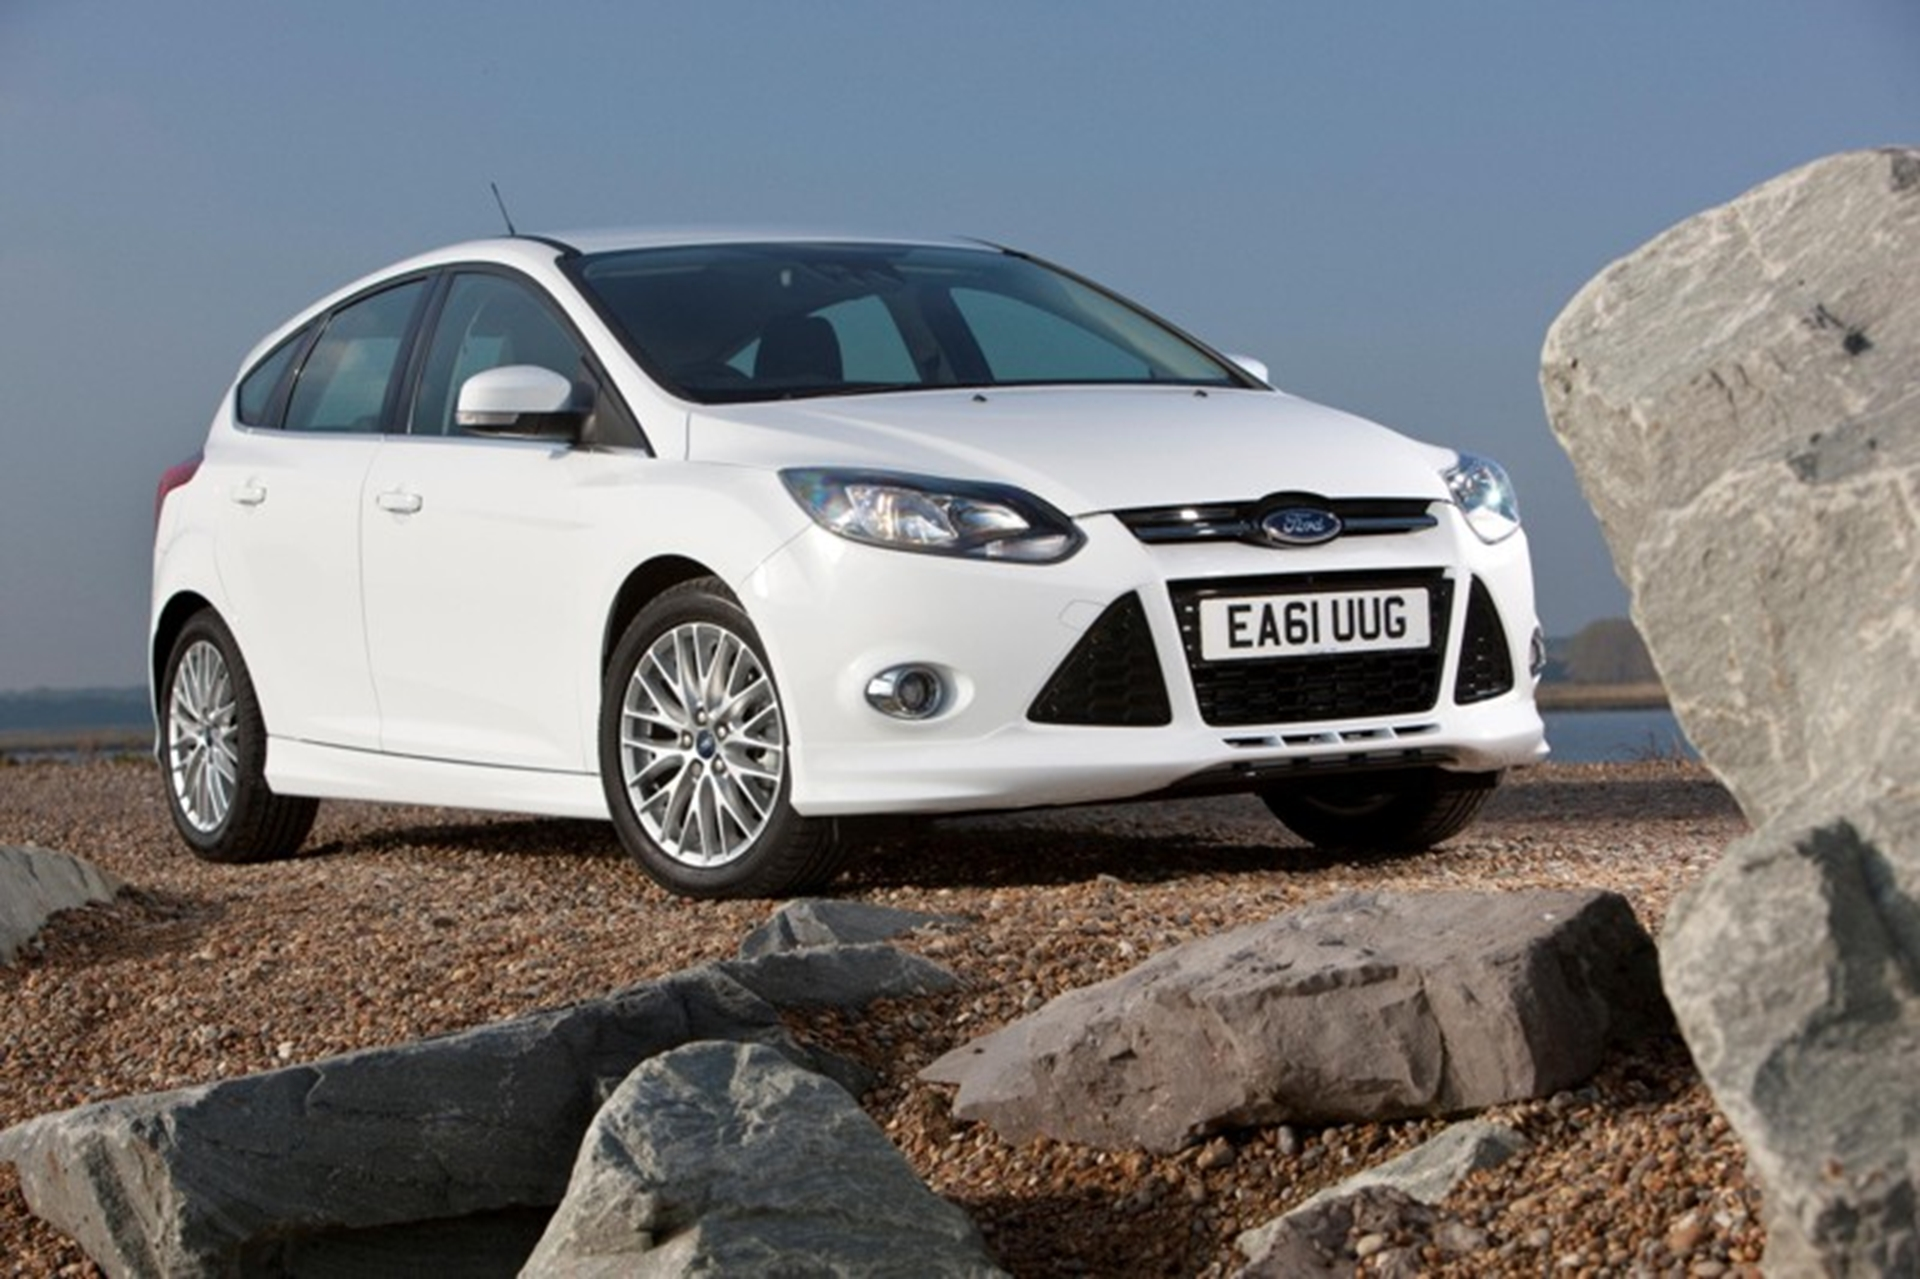 Ford Focus continues as the UK No 2 top seller for the year